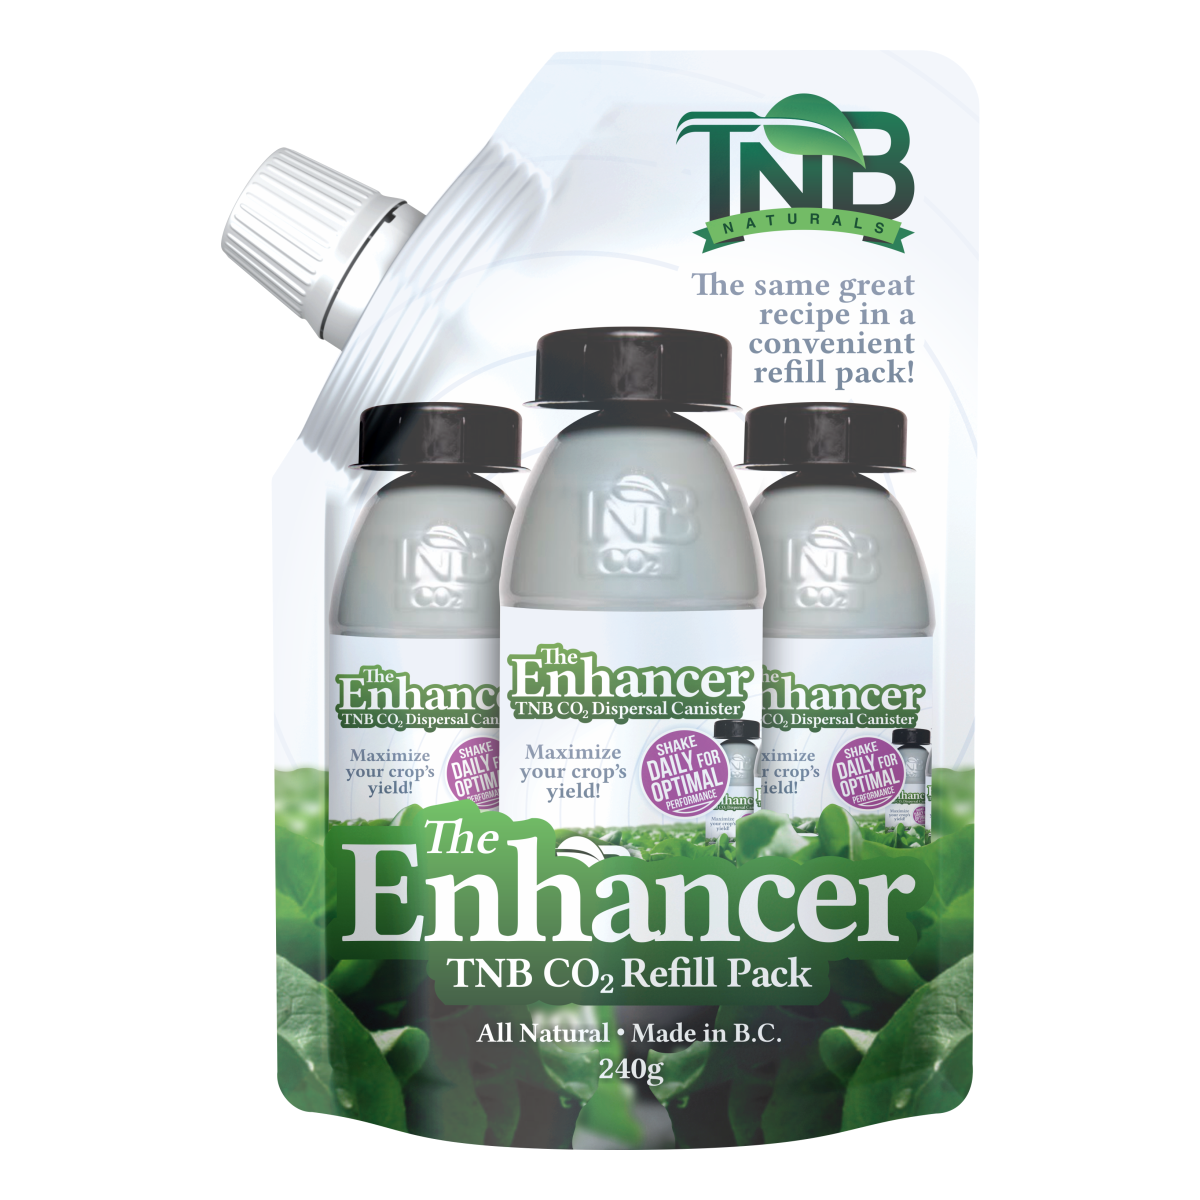 TNB CO2 Refill Pack (The Enhancer)